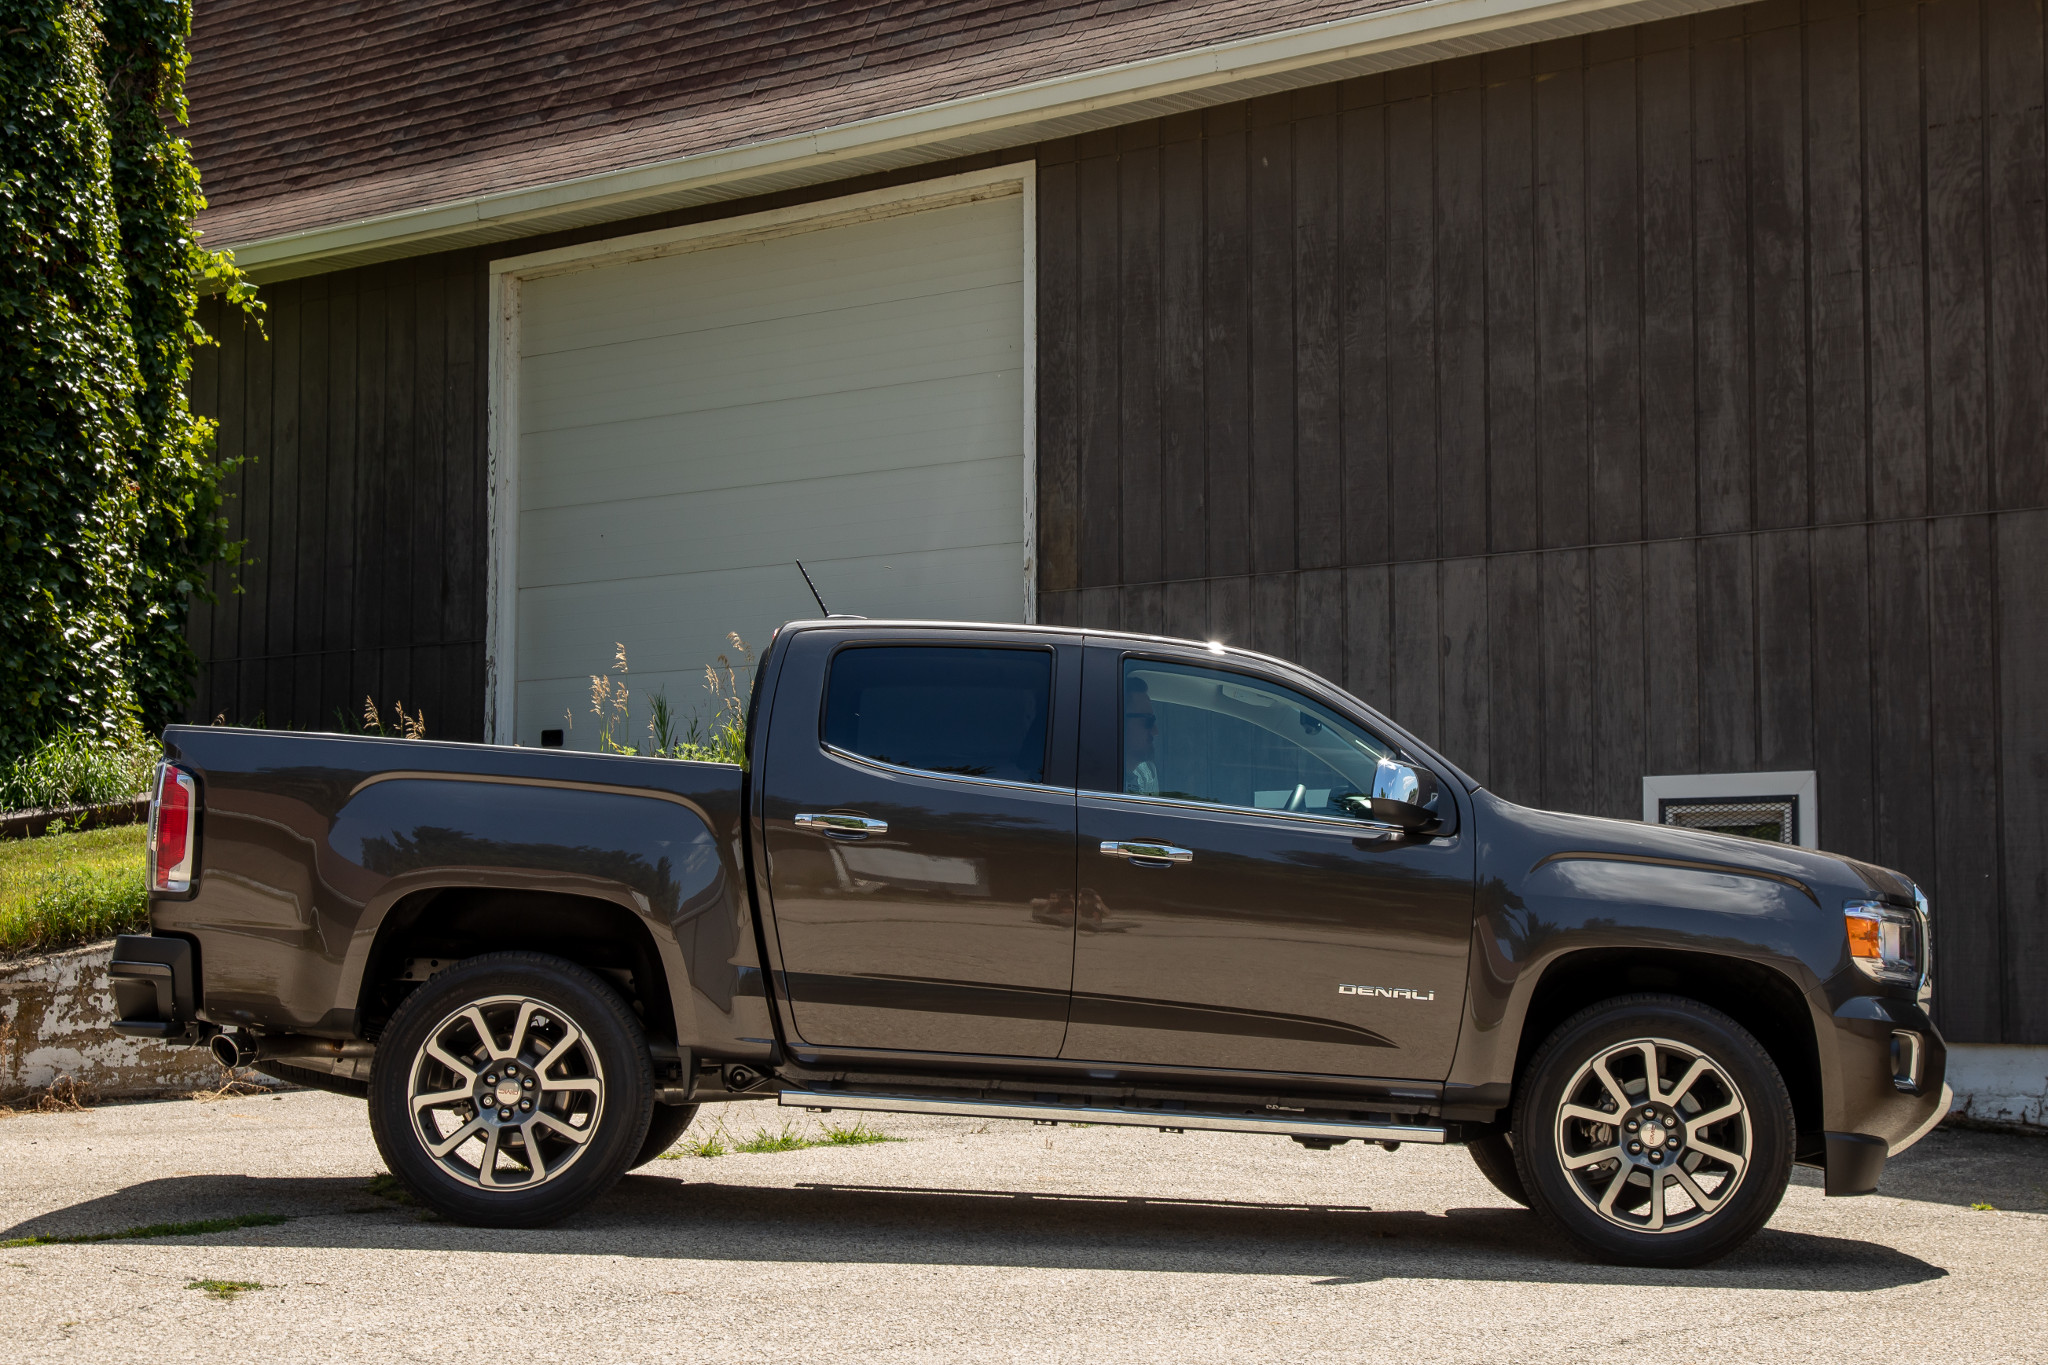 2019 GMC Canyon: Everything You Need to Know